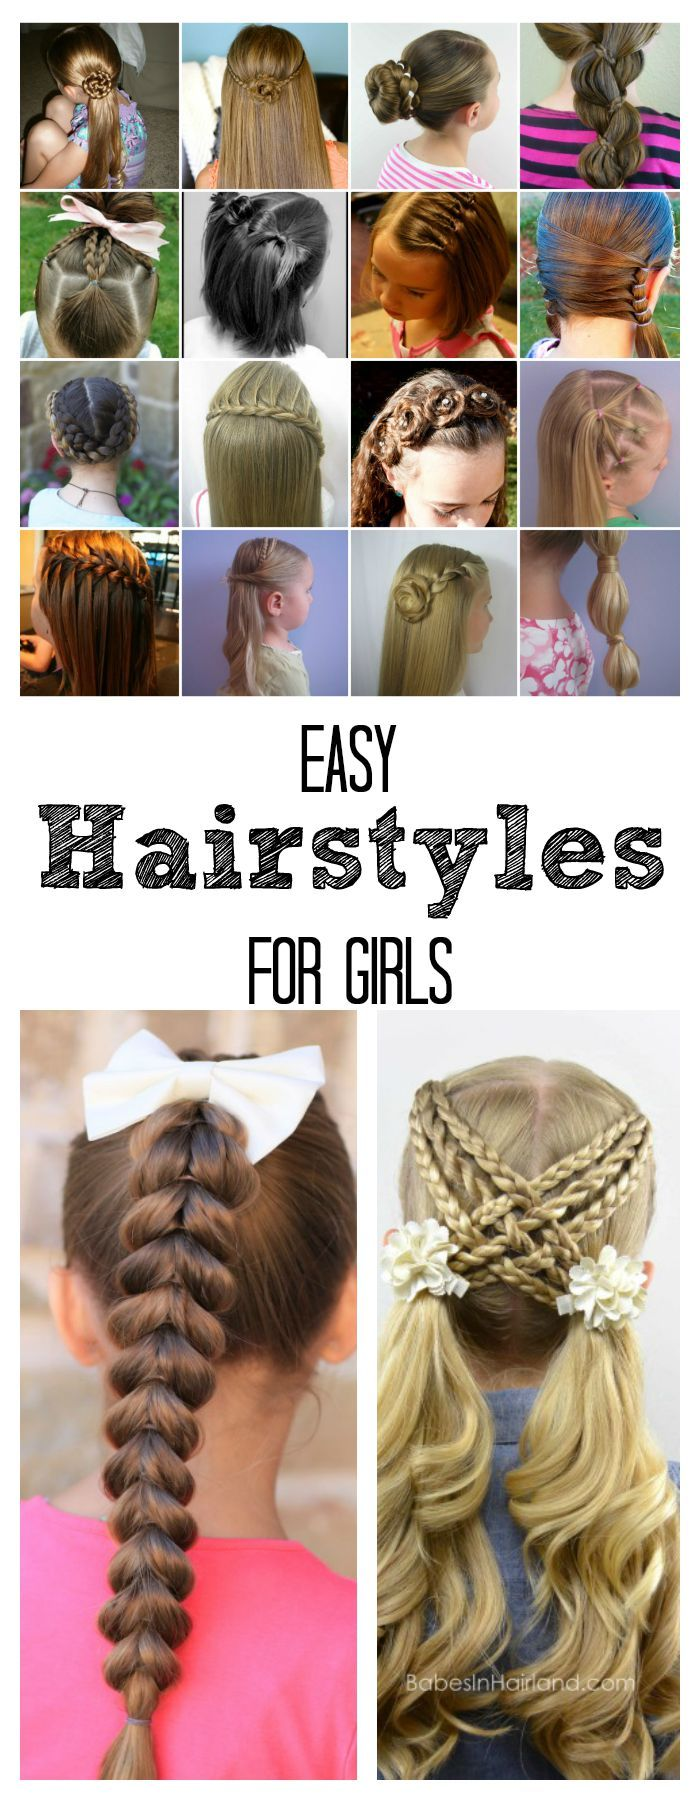 easy quick hair styles 1000 ideas about easy school hairstyles on 8613 | 3c771e569e6955312e405c917e0b3ba4